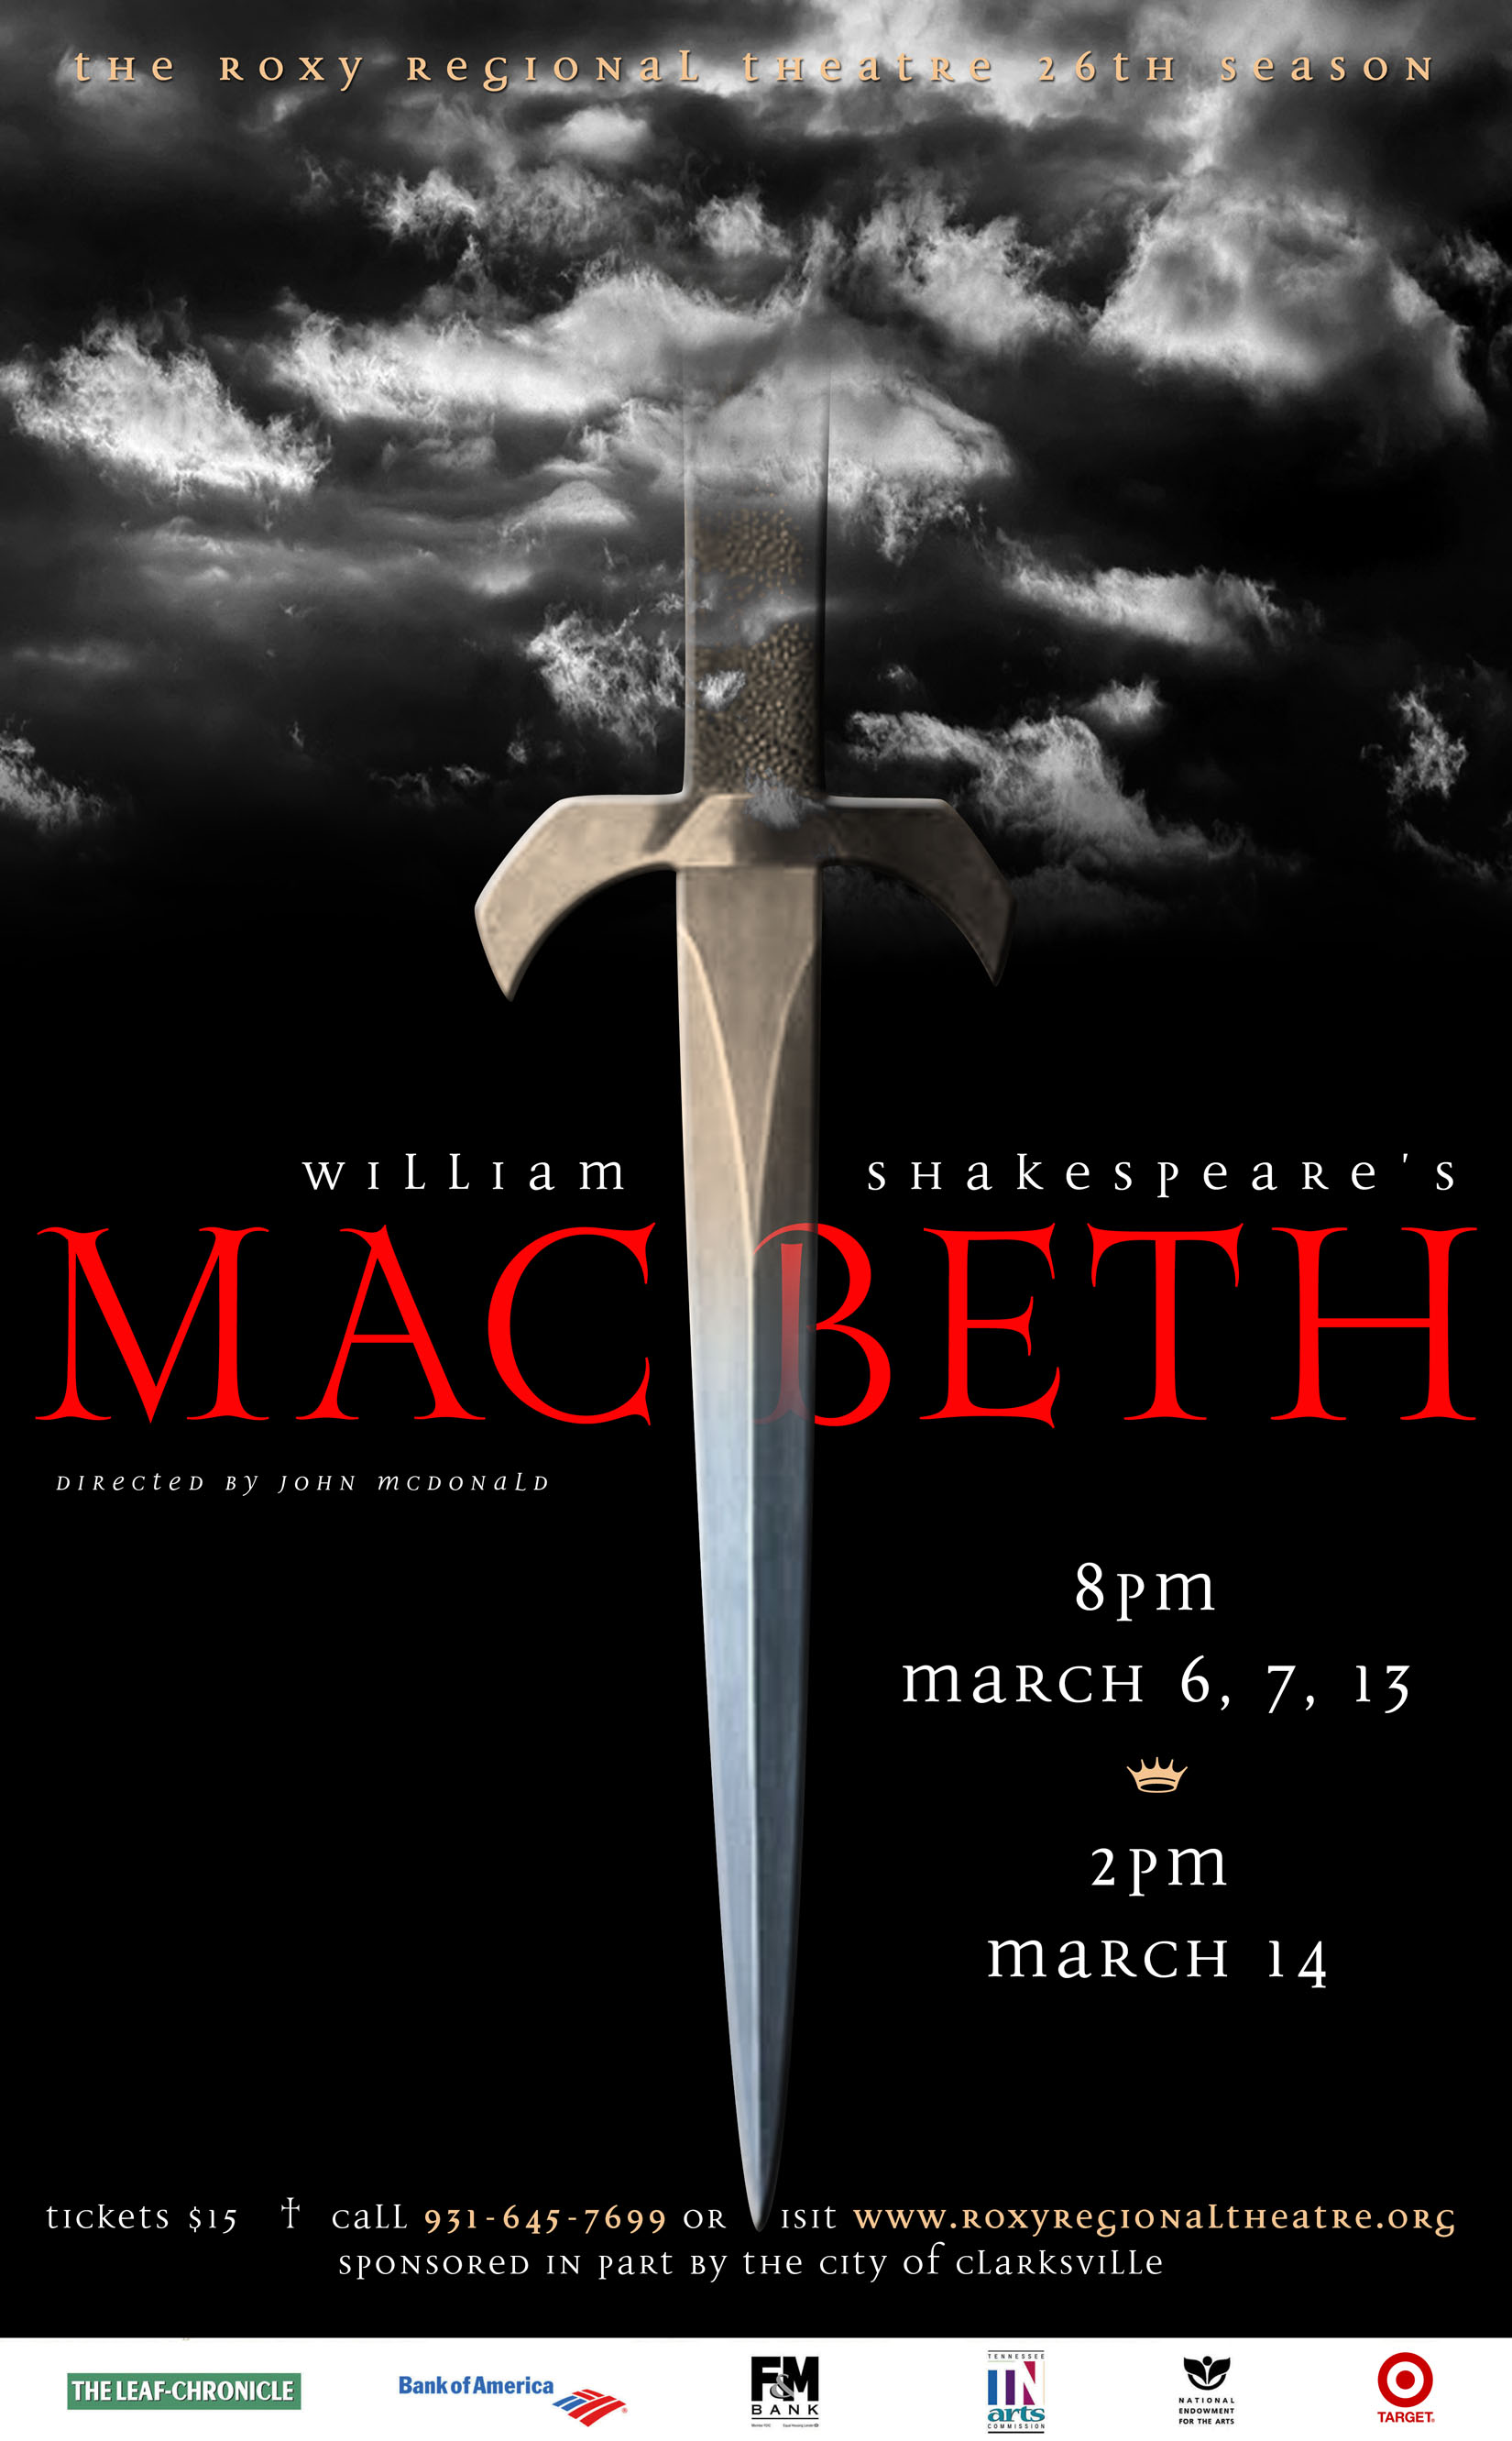 emotion fear william shakespeare s macbeth Macbeth at a glance in macbeth, william shakespeare's tragedy about power, ambition, deceit, and murder, the three witches foretell macbeth's rise to king of scotland but also prophesy that future kings will descend from banquo, a.